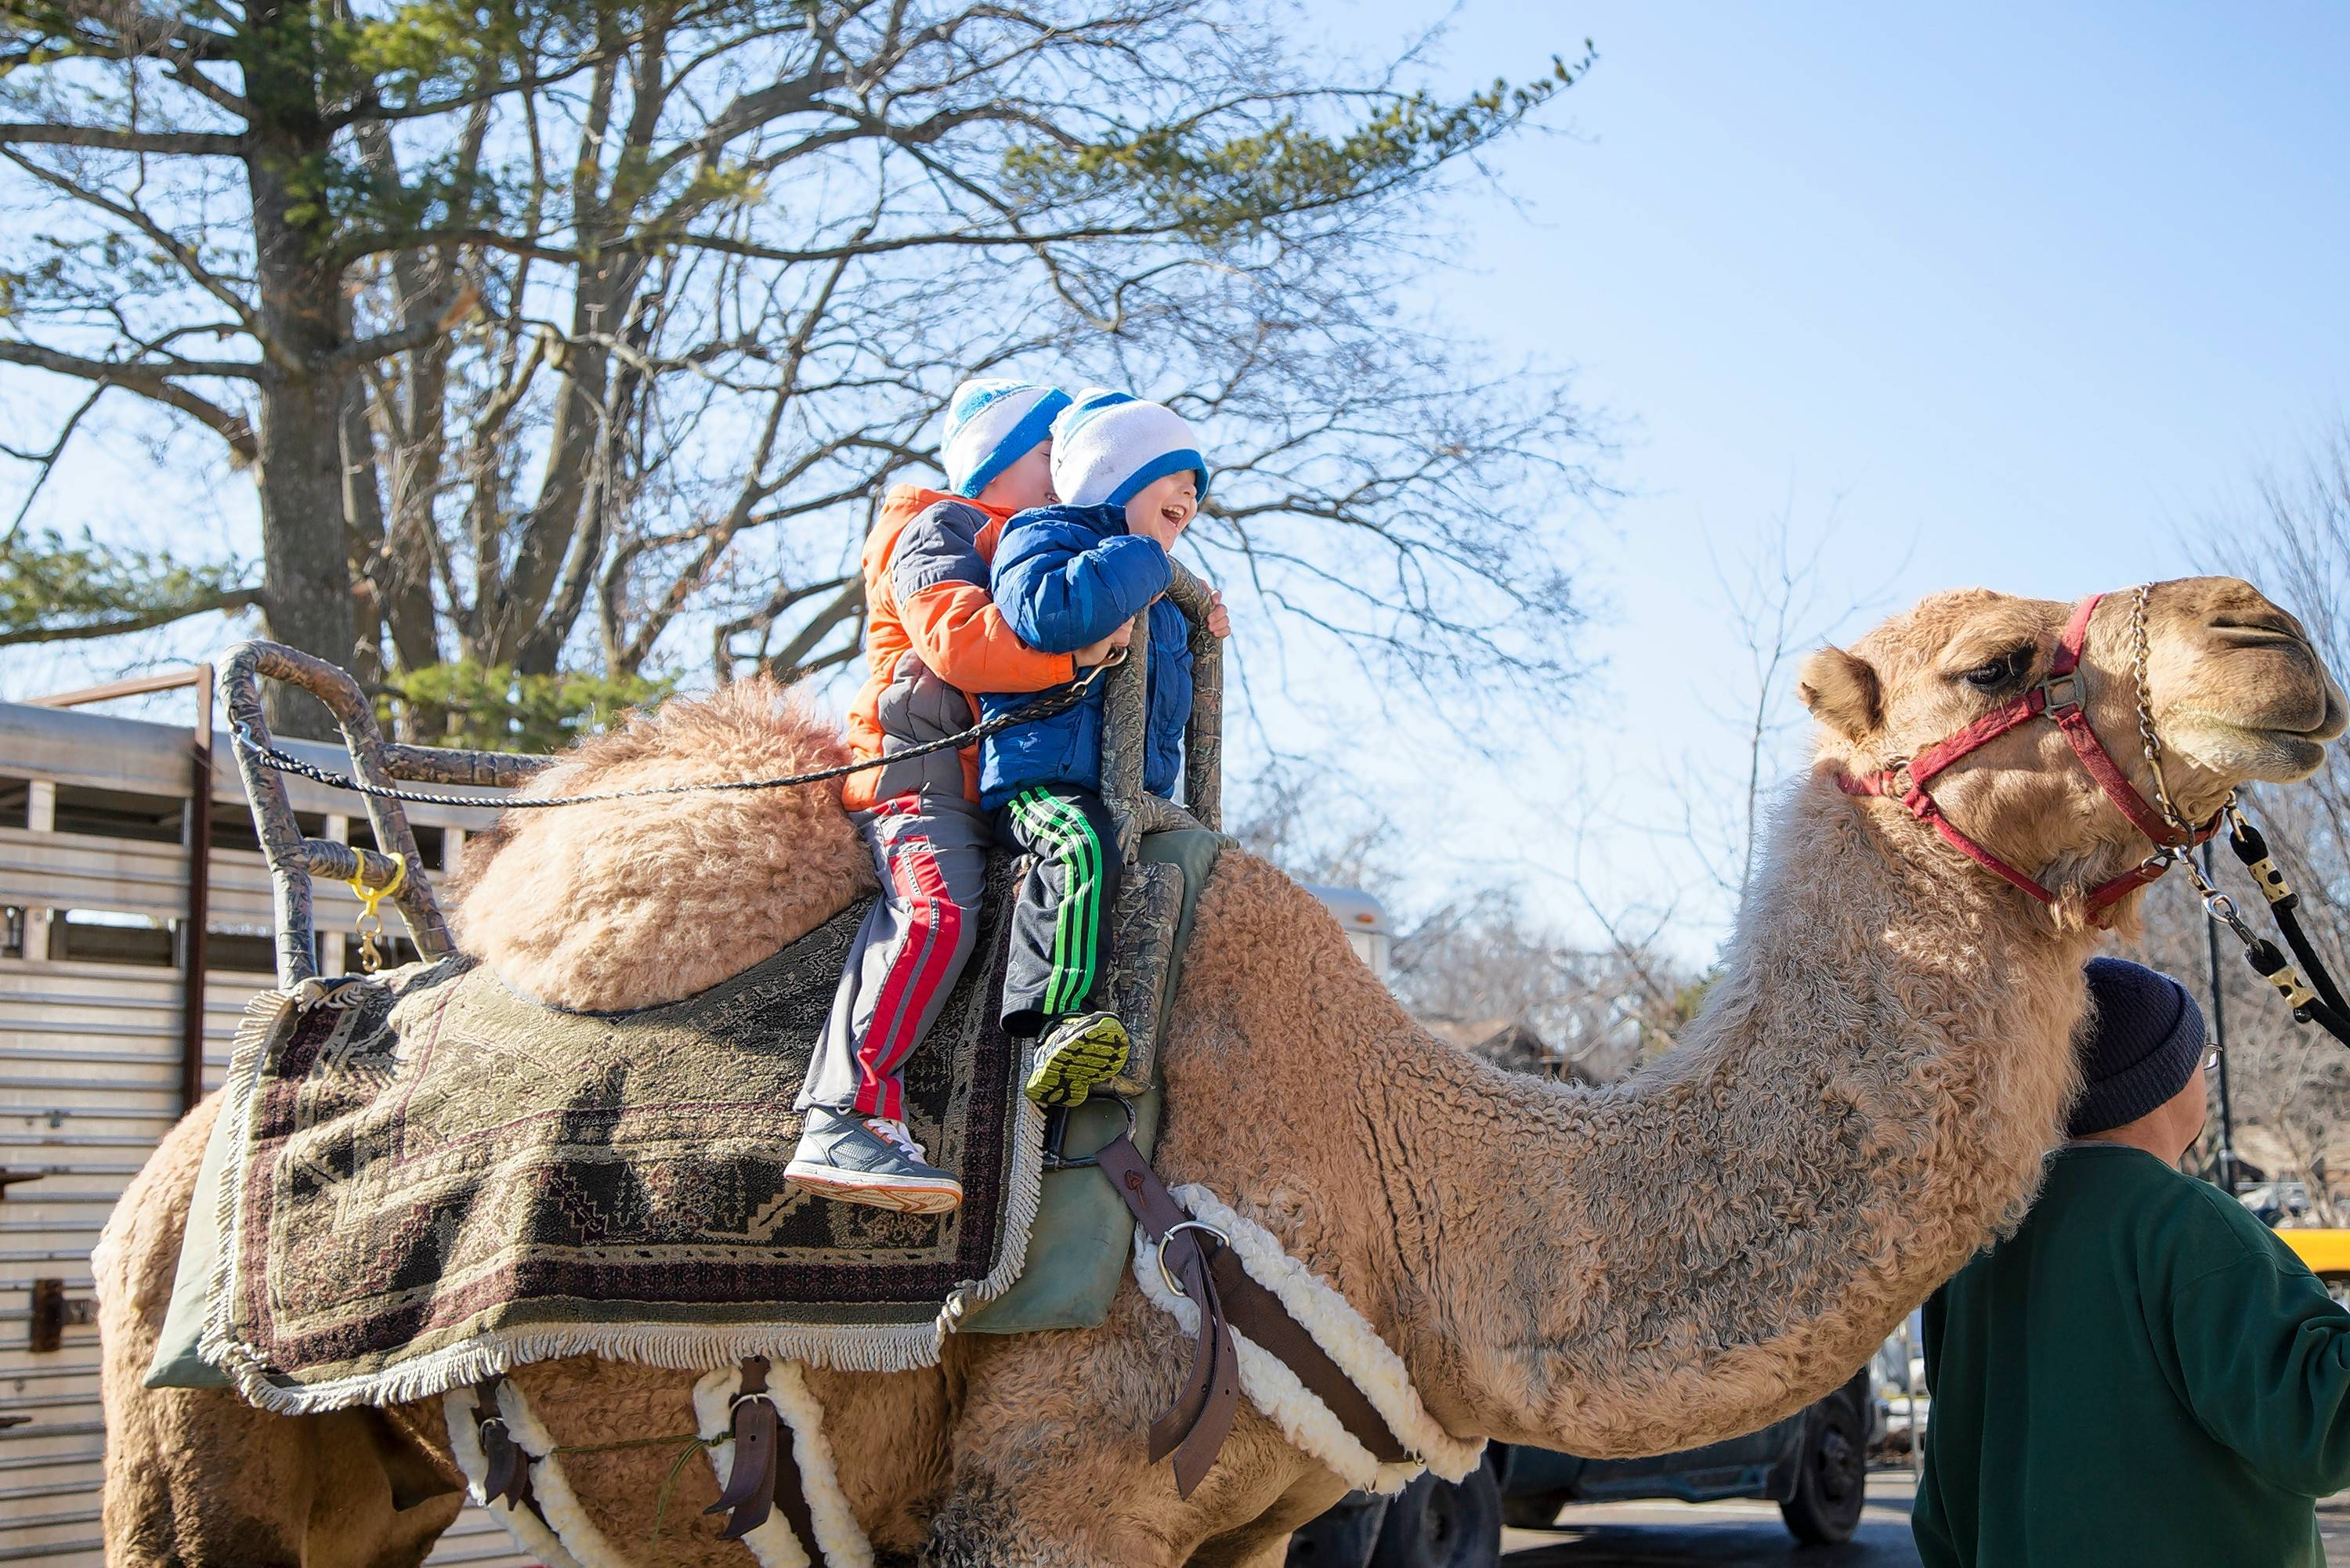 Camel rides in winter? Yes, the Winter Festival in Cedarburg, Wis., offers them.